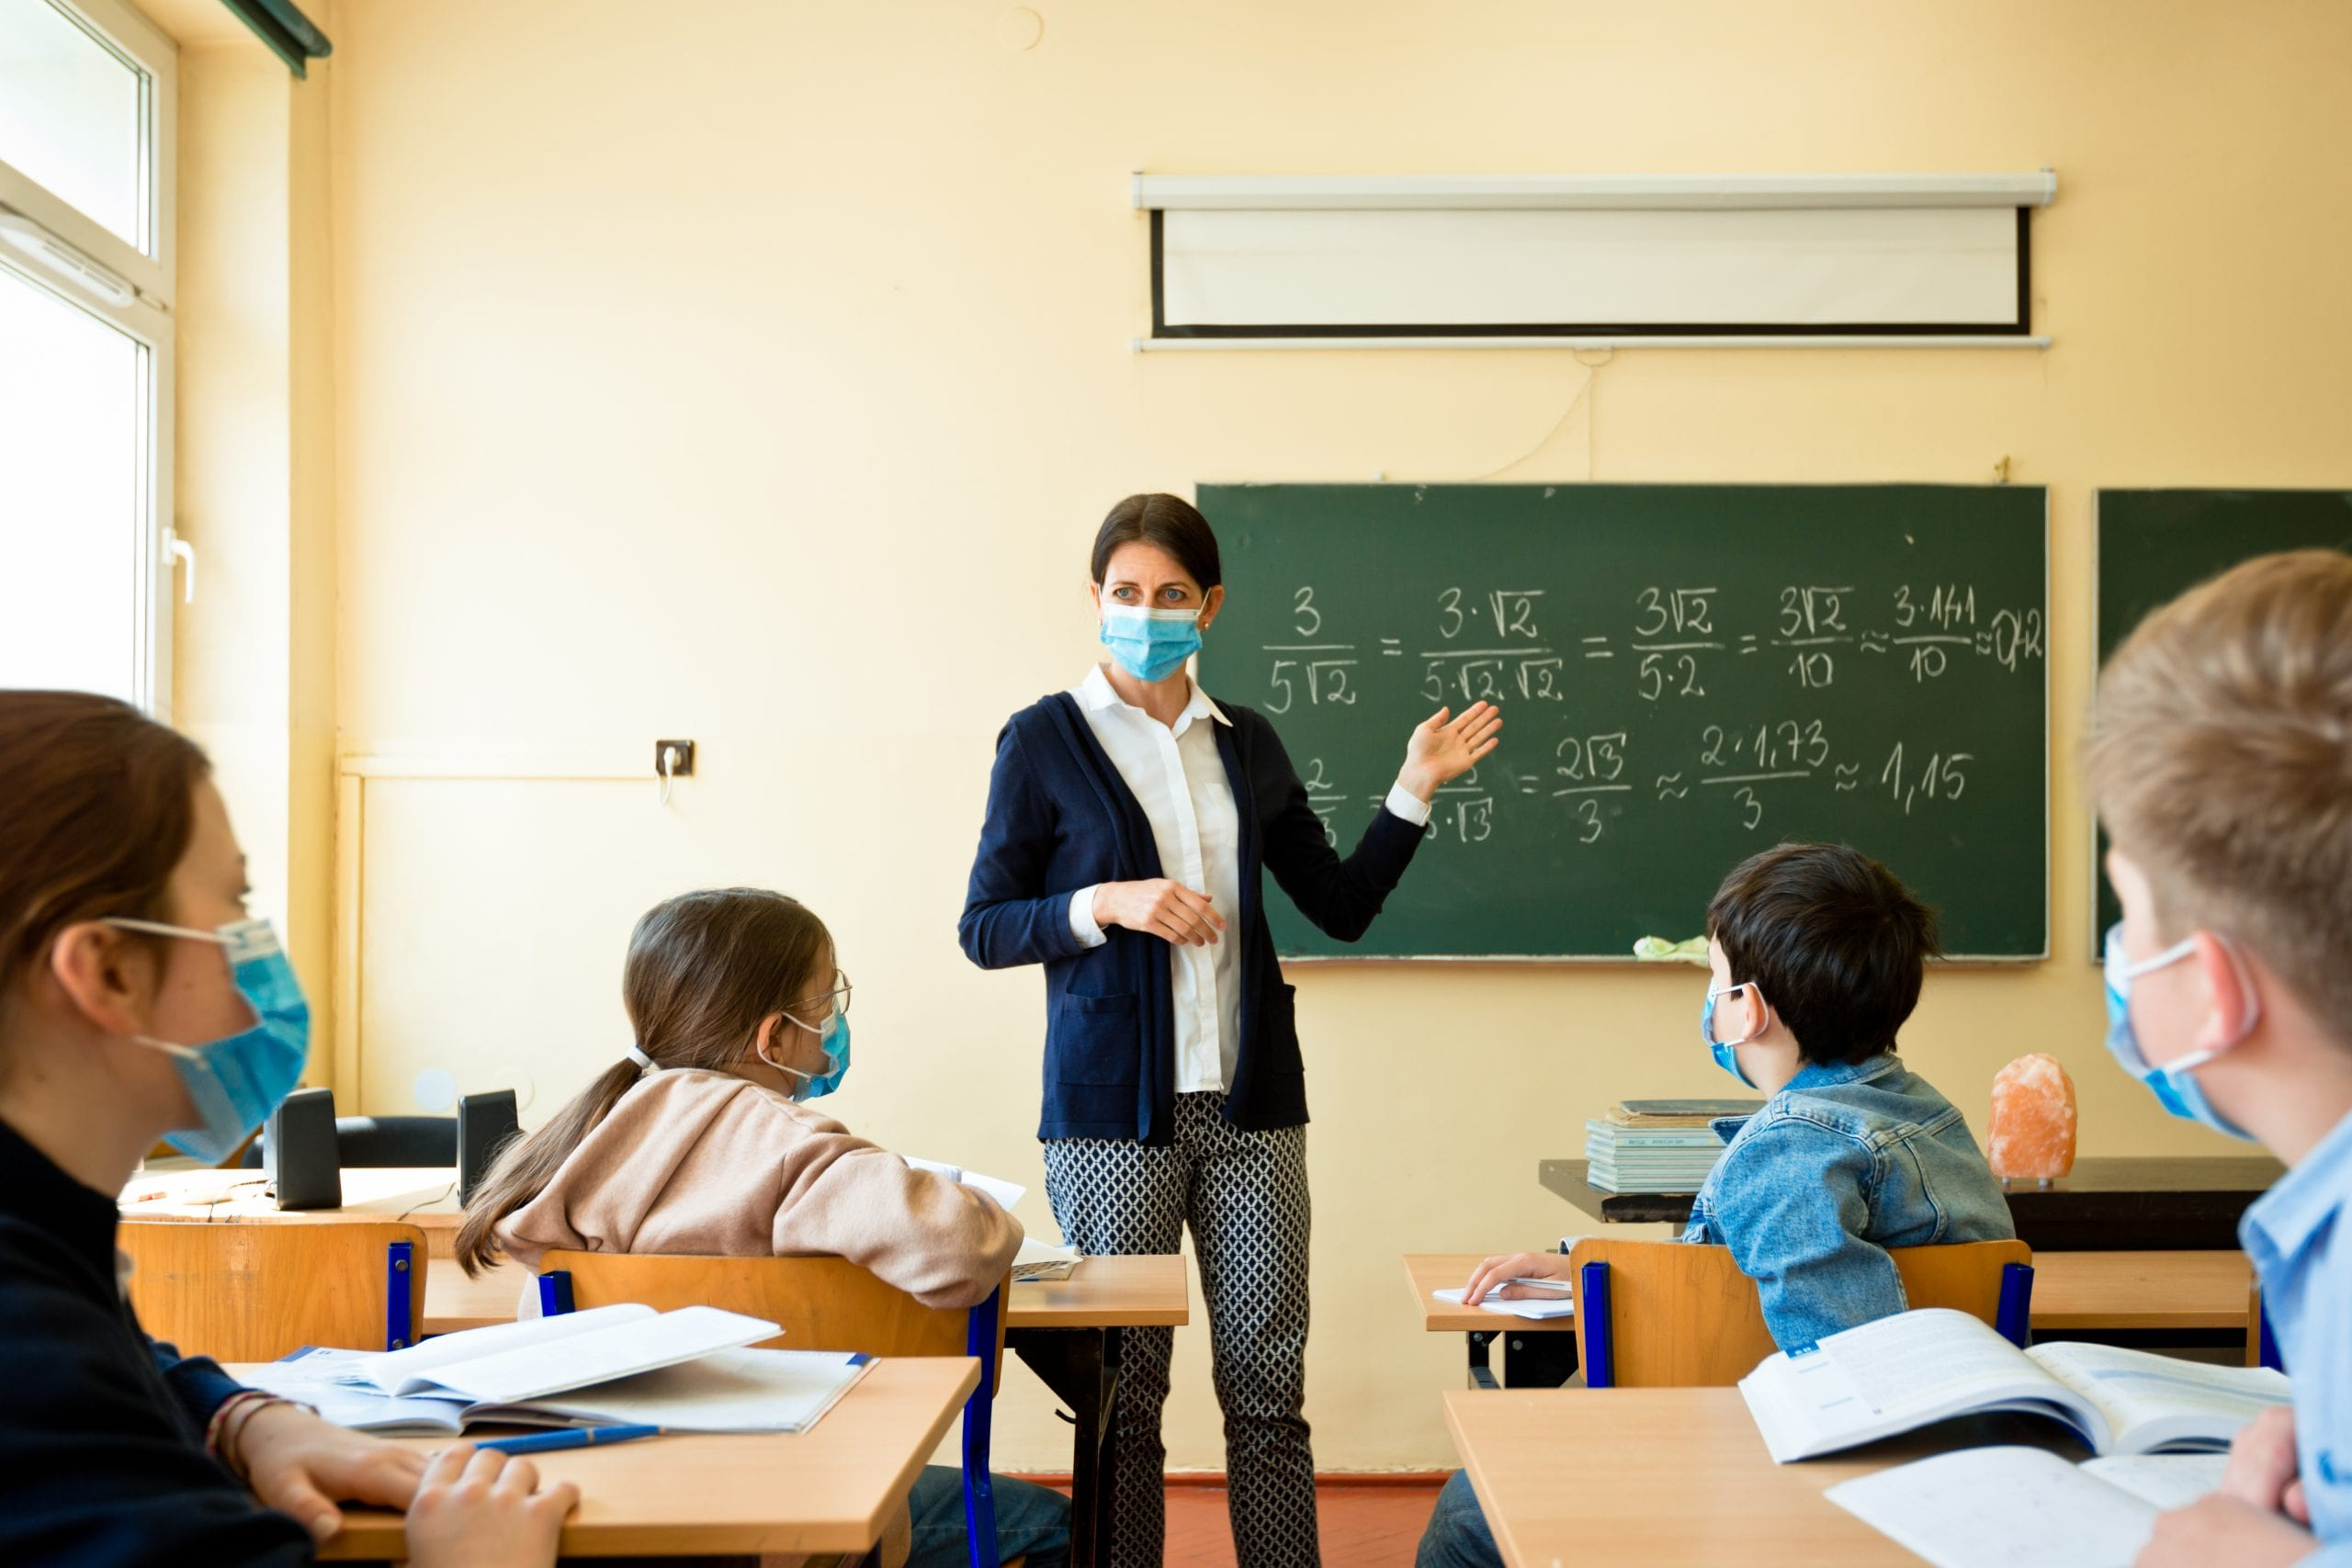 Teacher in mask teaching a group of students